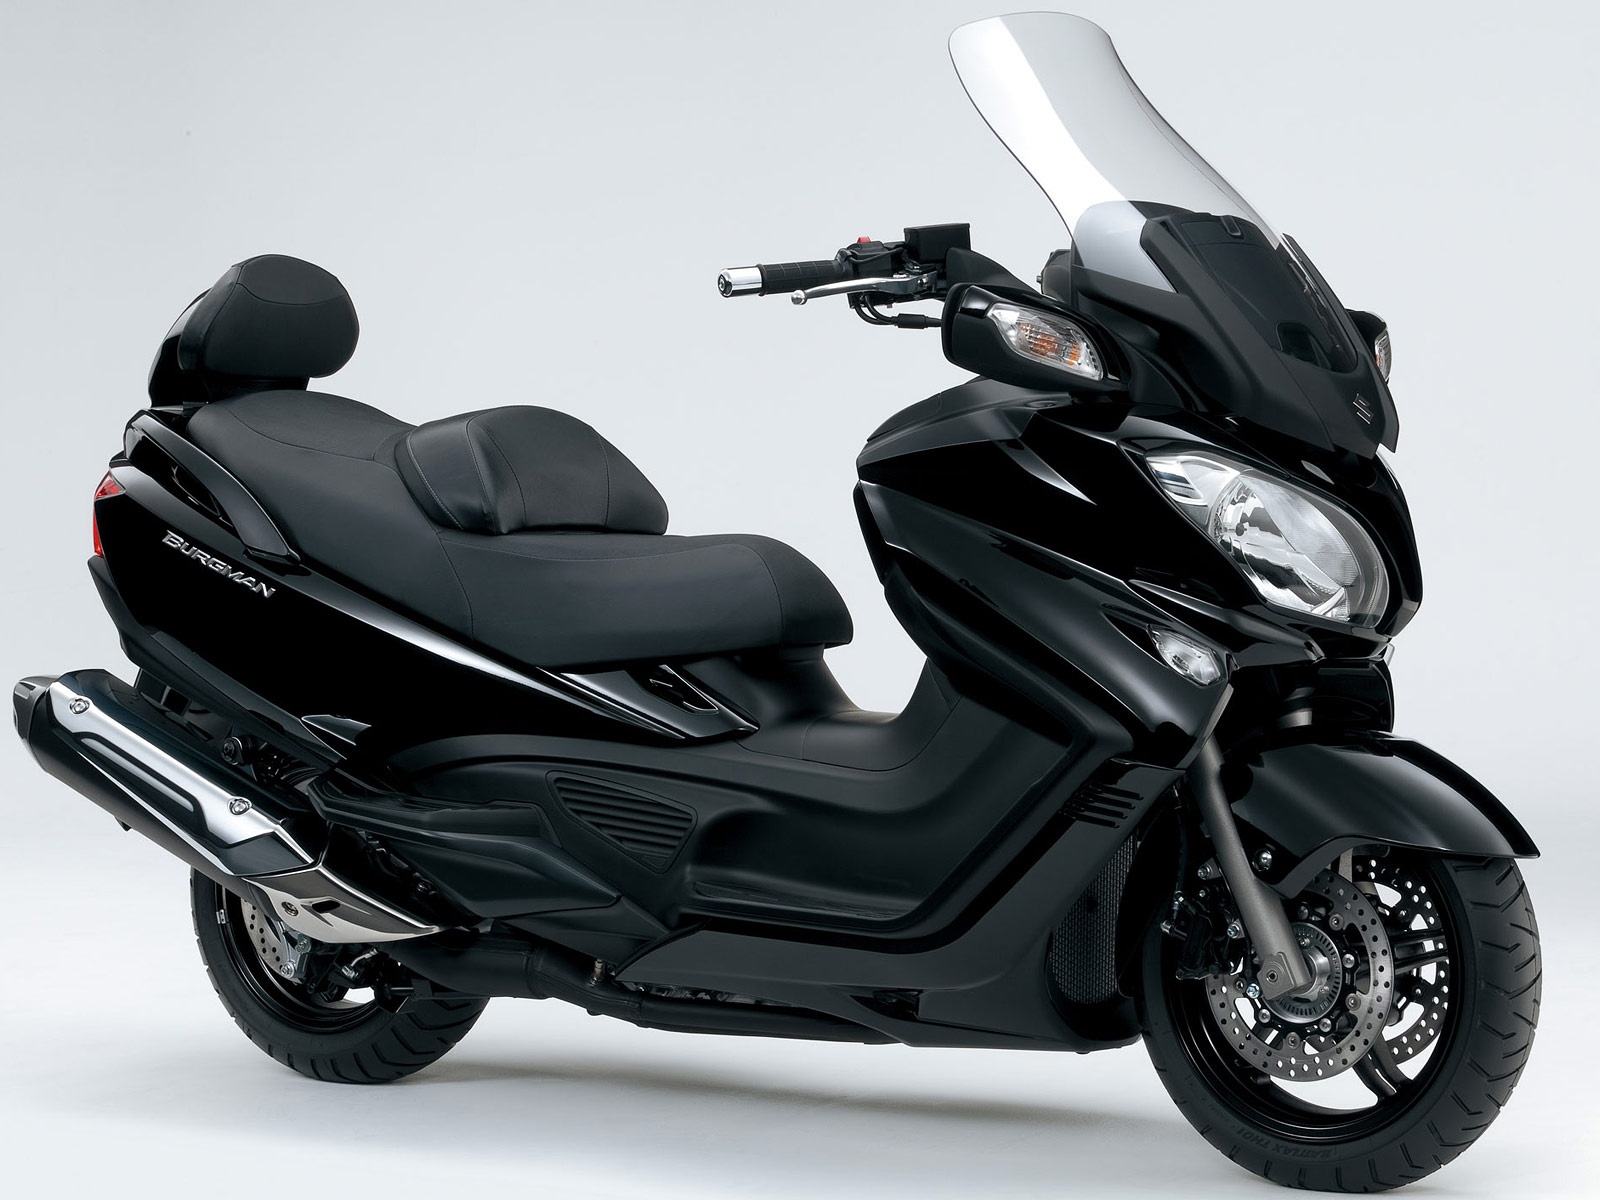 2013 suzuki burgman 650 executive abs scooter pictures. Black Bedroom Furniture Sets. Home Design Ideas